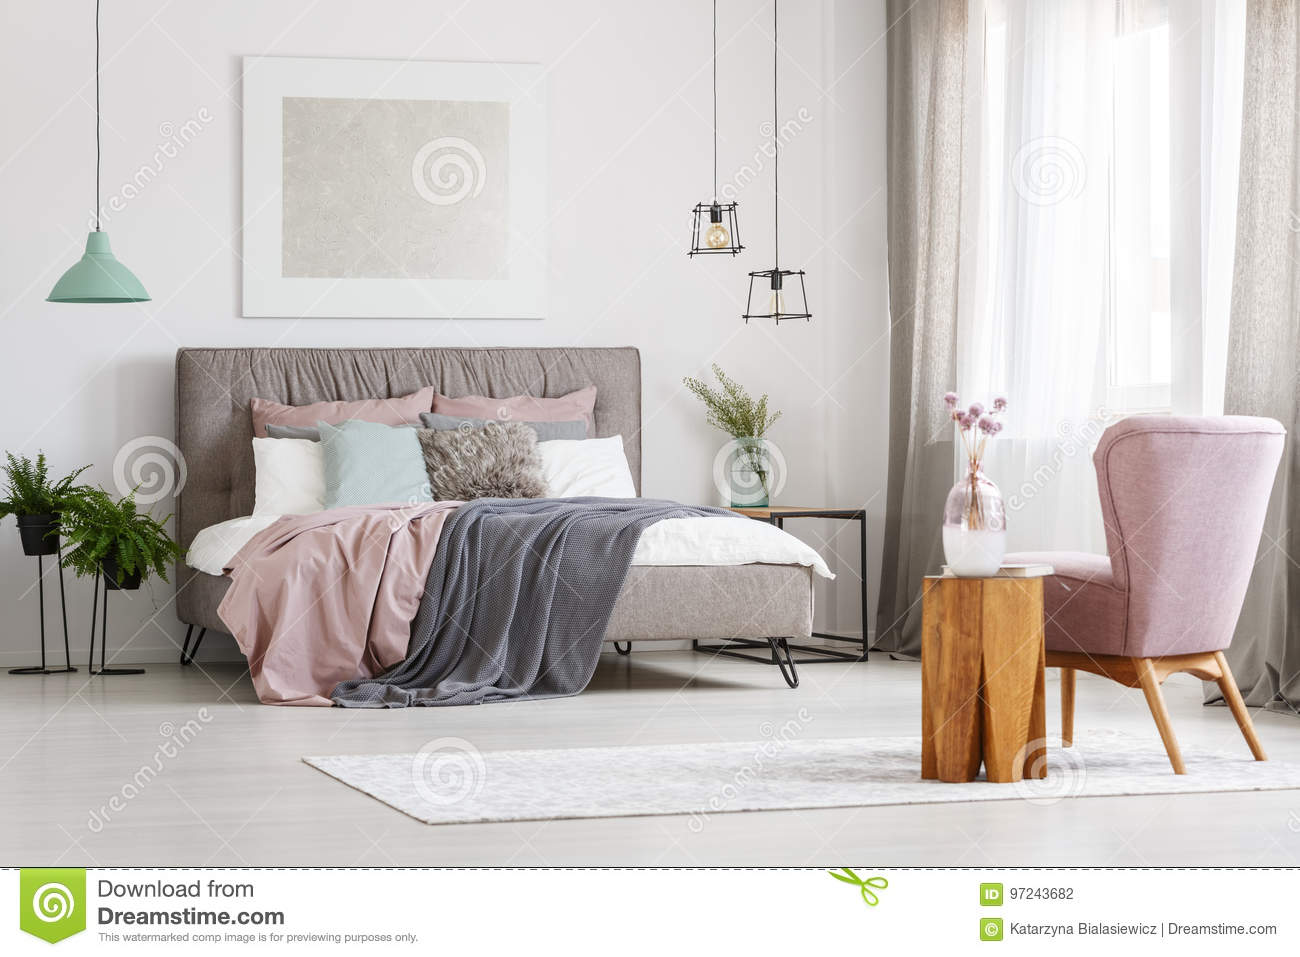 Poster above bed stock photo. Image of blankets, lampshade - 97243682